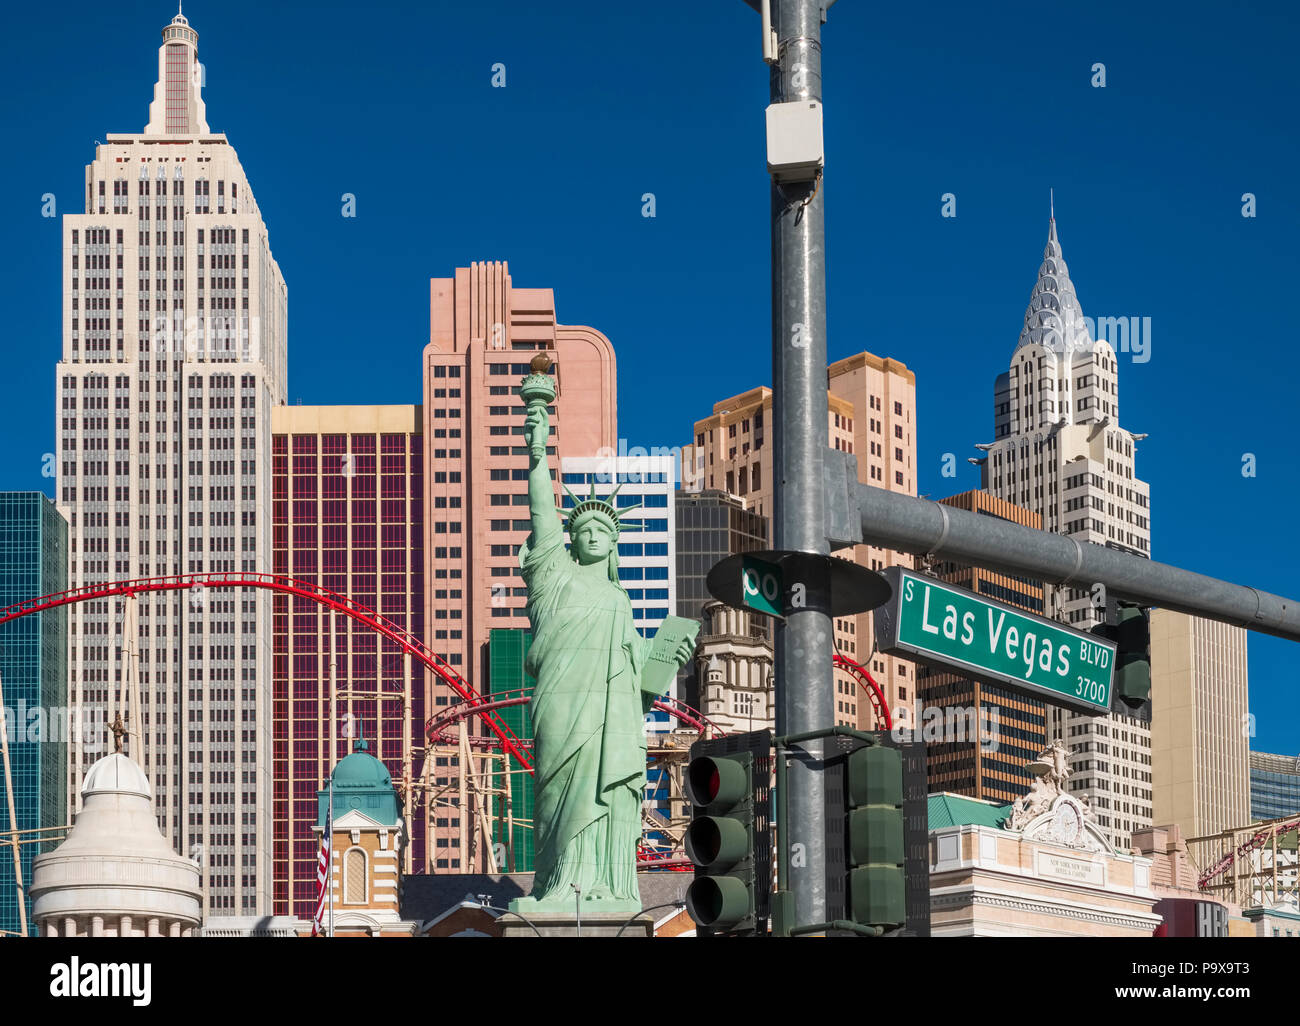 Las Vegas Strip, the New York New York Hotel and Casino on the Las Vegas Boulevard, Nevada, USA - Stock Image